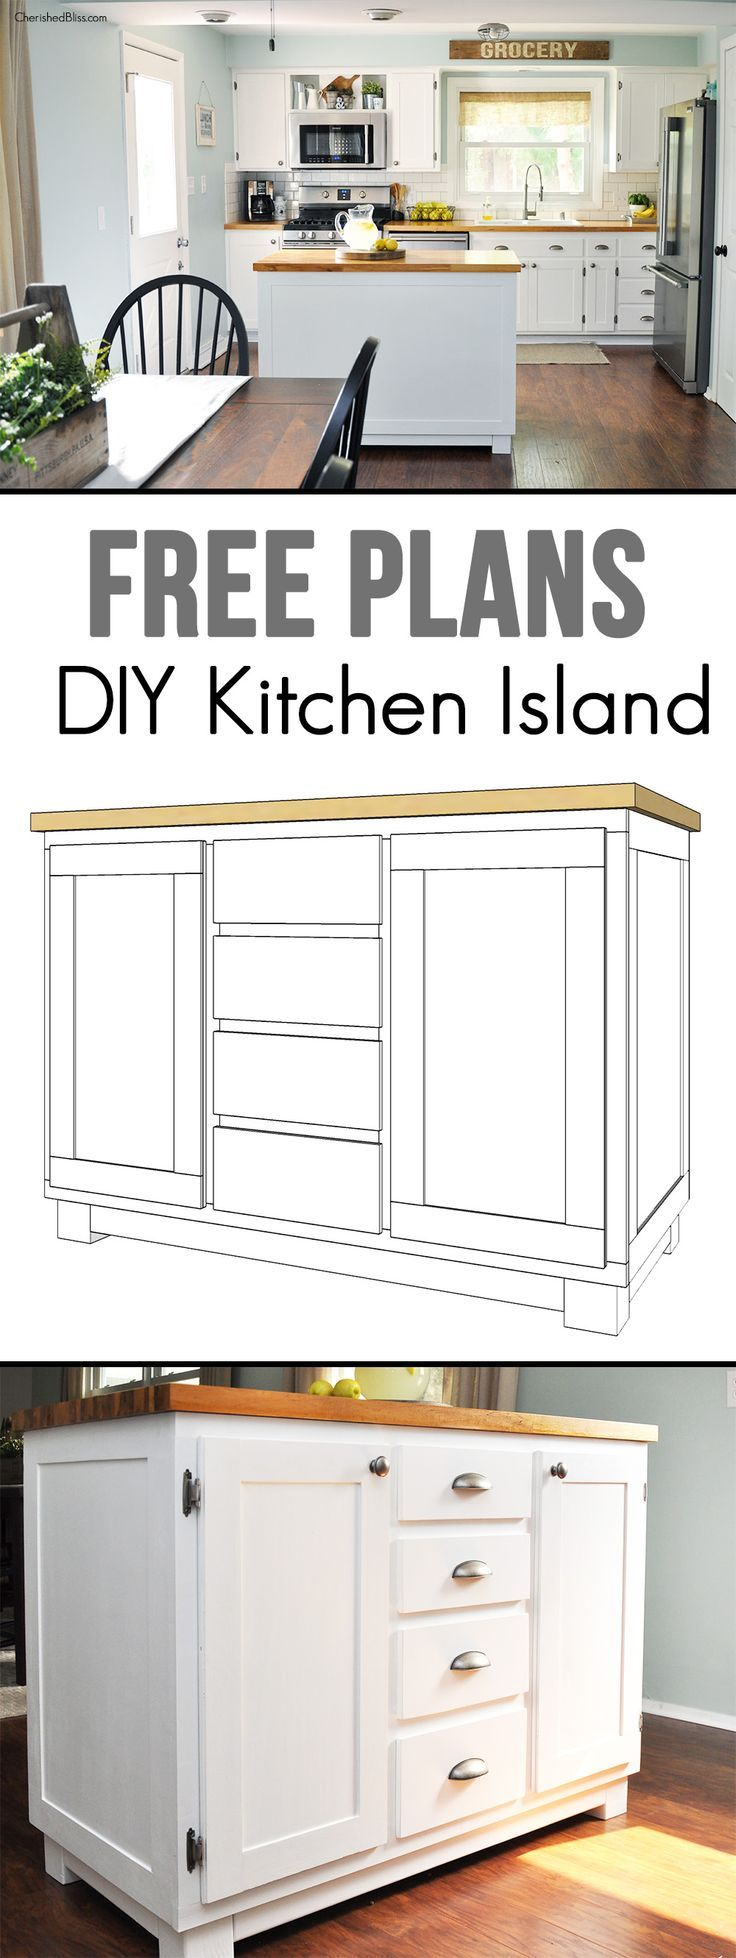 25 Best Ideas About Building Cabinets On Pinterest Clever . Build My Own  Kitchen ...